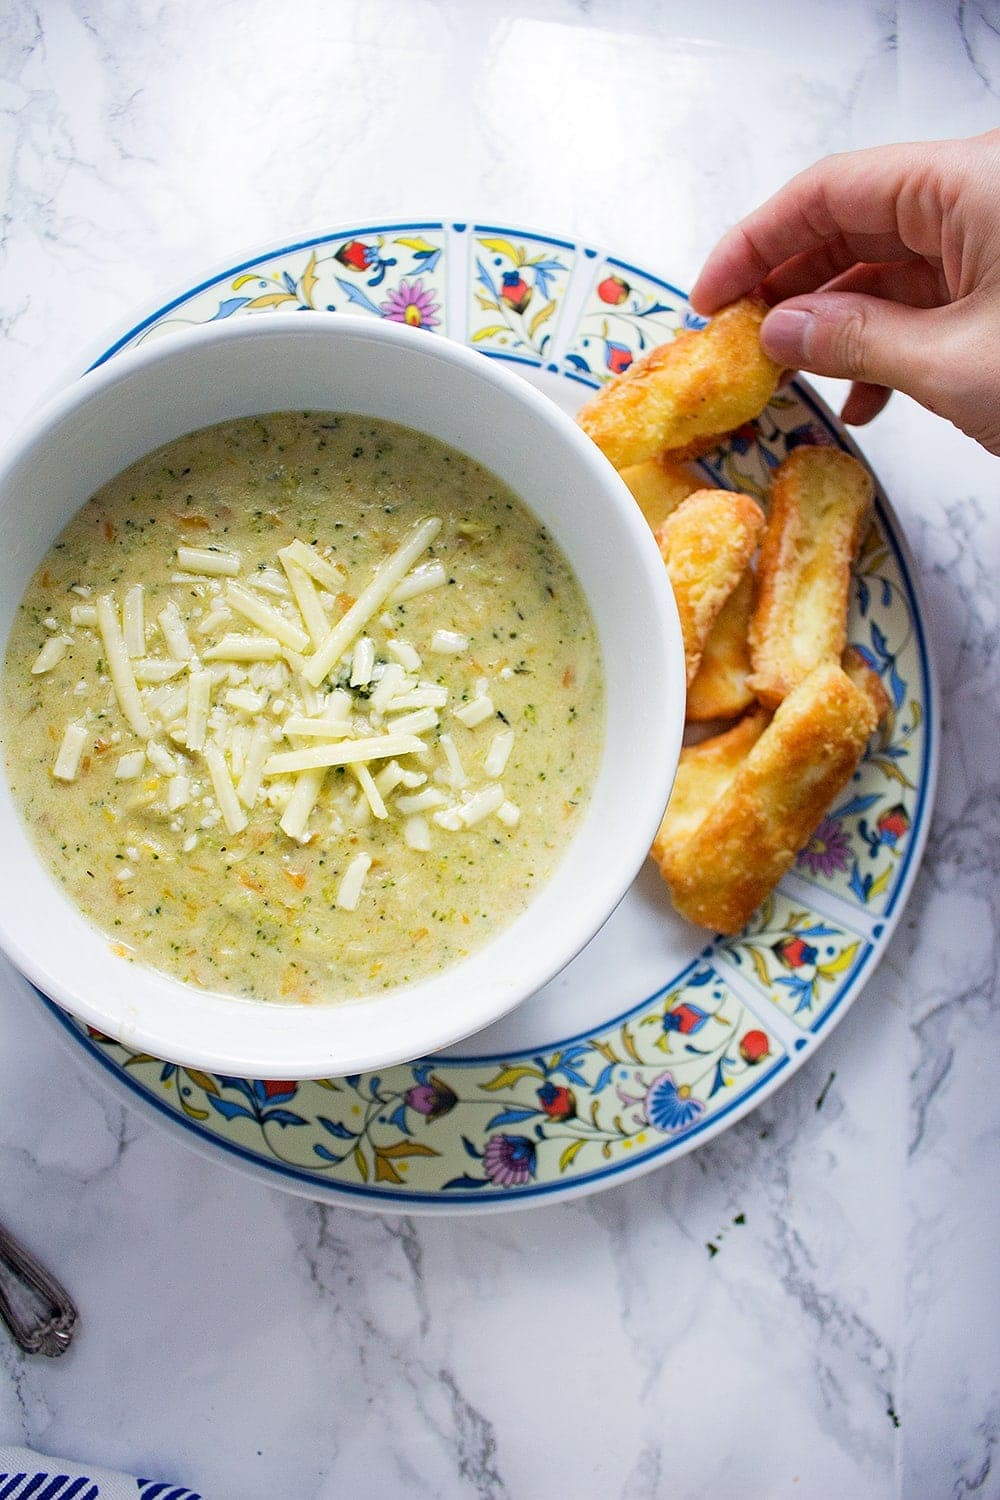 Can you ever have too much cheese? These crispy halloumi fries are the perfect thing to dip into this indulgent broccoli cheese soup.